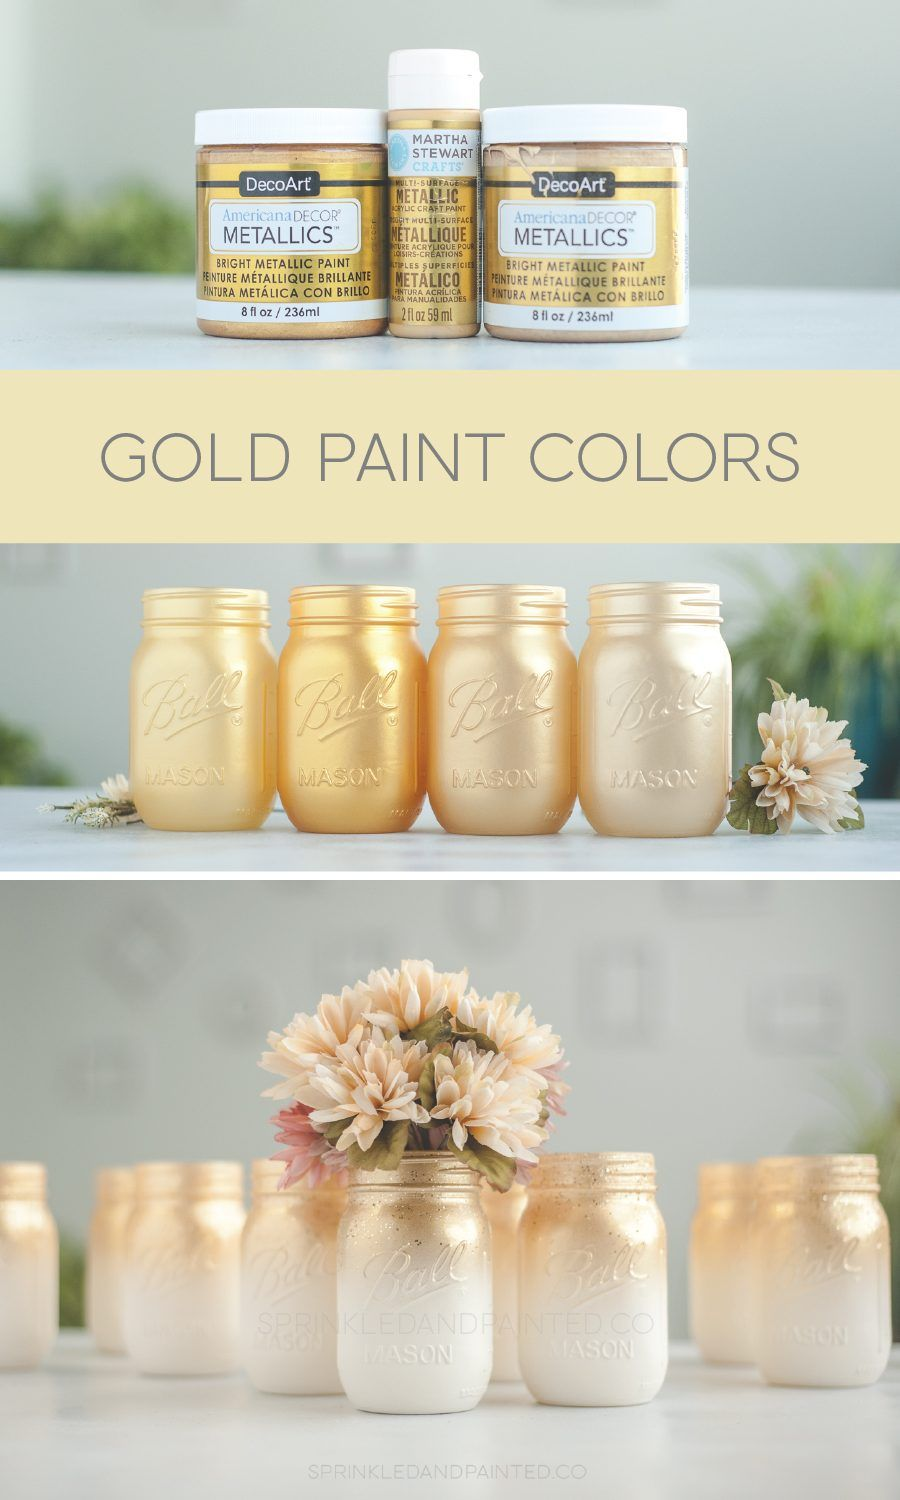 Gold Paint Colors is part of Gold paint colors, Mason jar crafts diy, Spray paint colors, Jar crafts, Gold acrylic paint, Gold paint - Since I started airbrushing Ive been testing some gold paints  Ive been working on replicating Rustolems gold spray paint  You can check out my gold spray paint post  Rustolems gold is the 'winner' for the best gold spray paint for me  This post contains affiliate links for Amazon and I make commission if you buy …